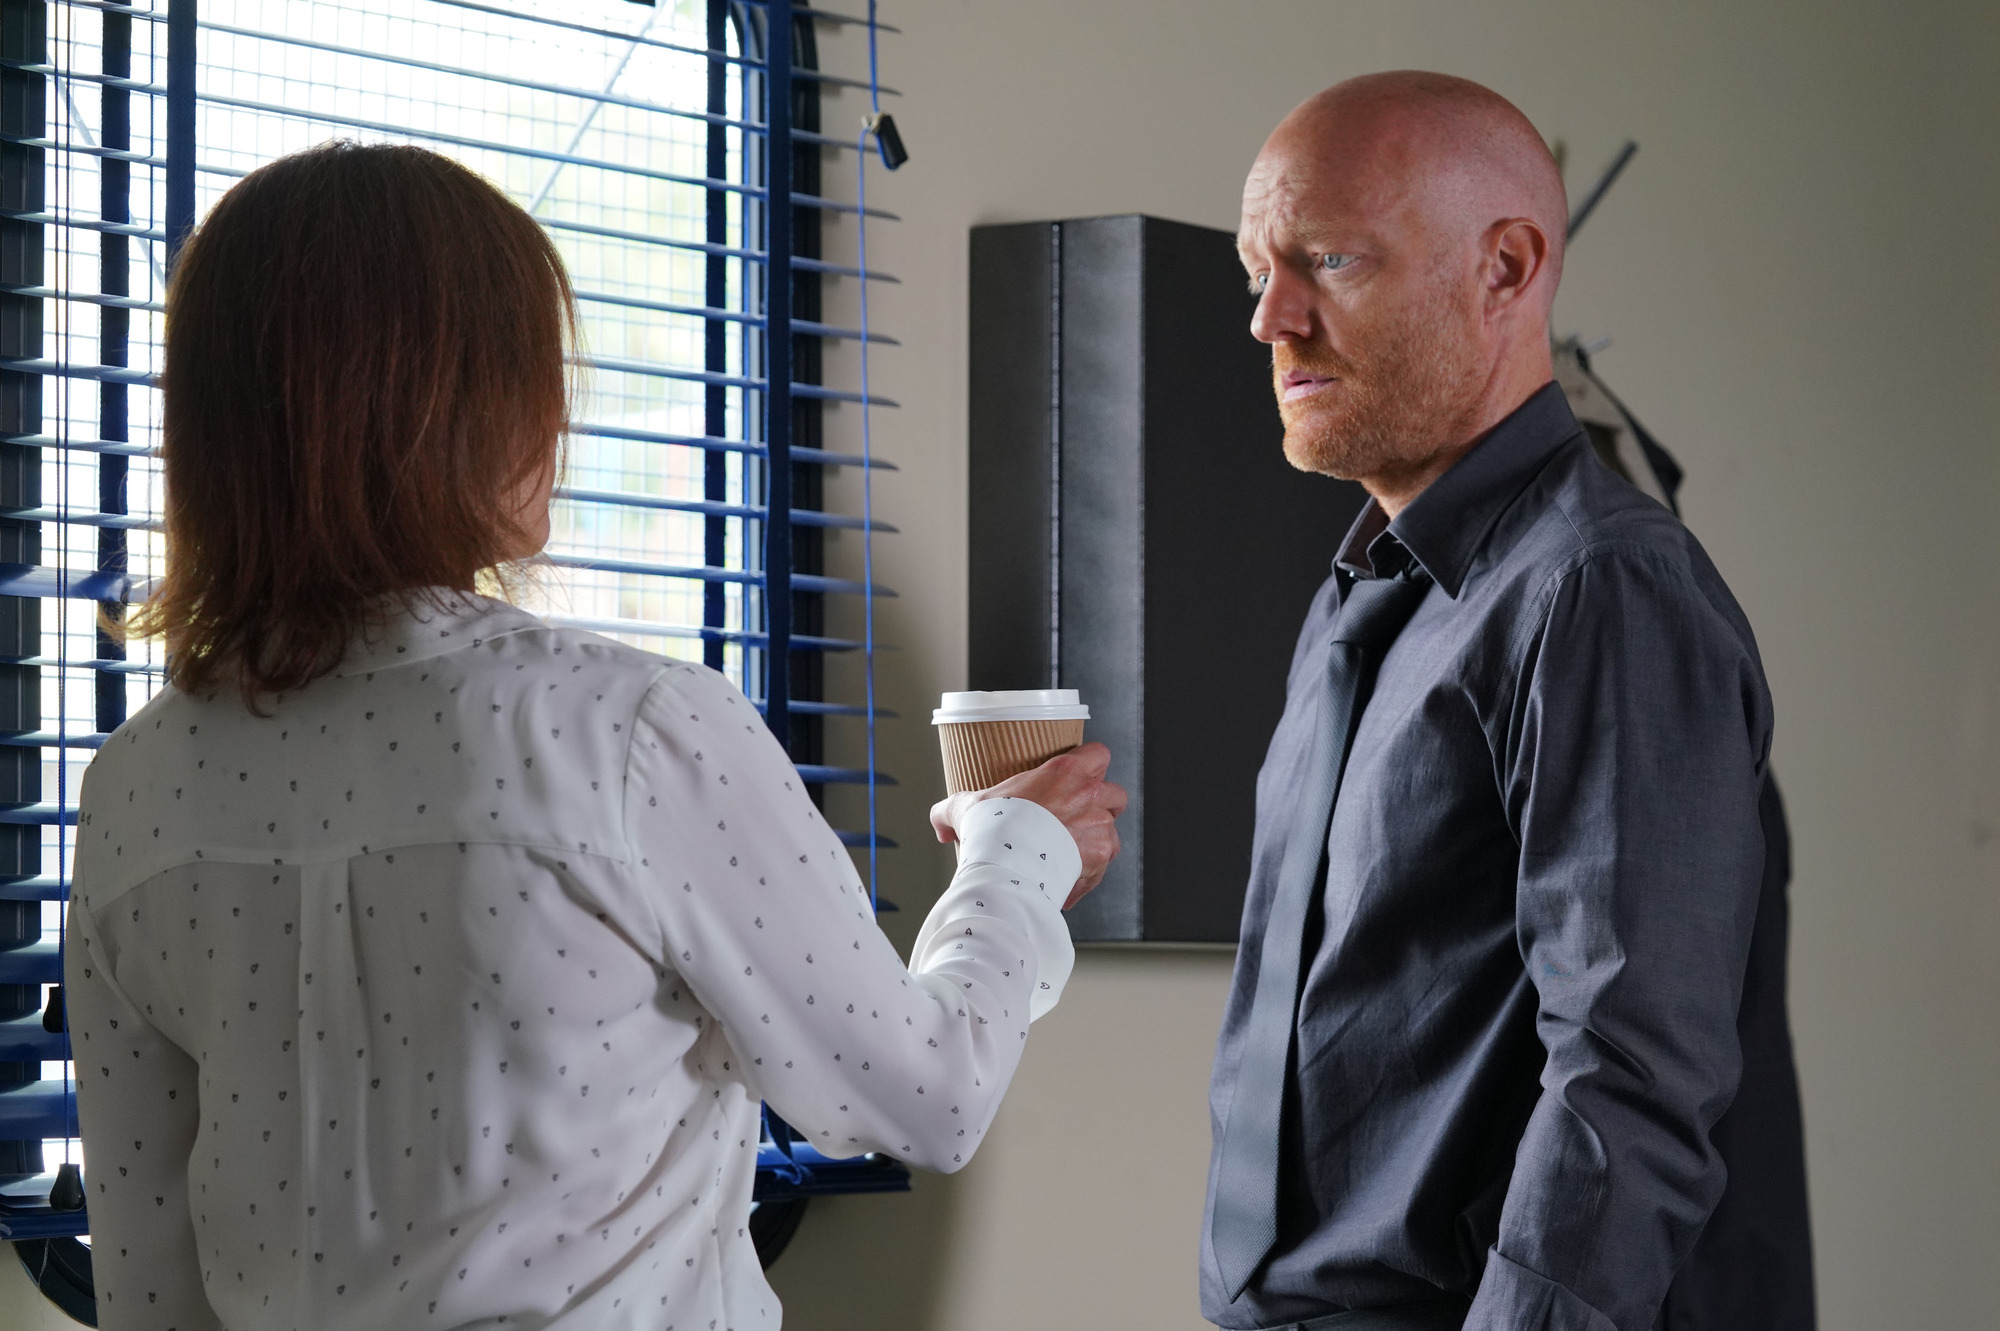 EastEnders spoilers: Jake Wood to take break as Max Branning for his boxing show tour